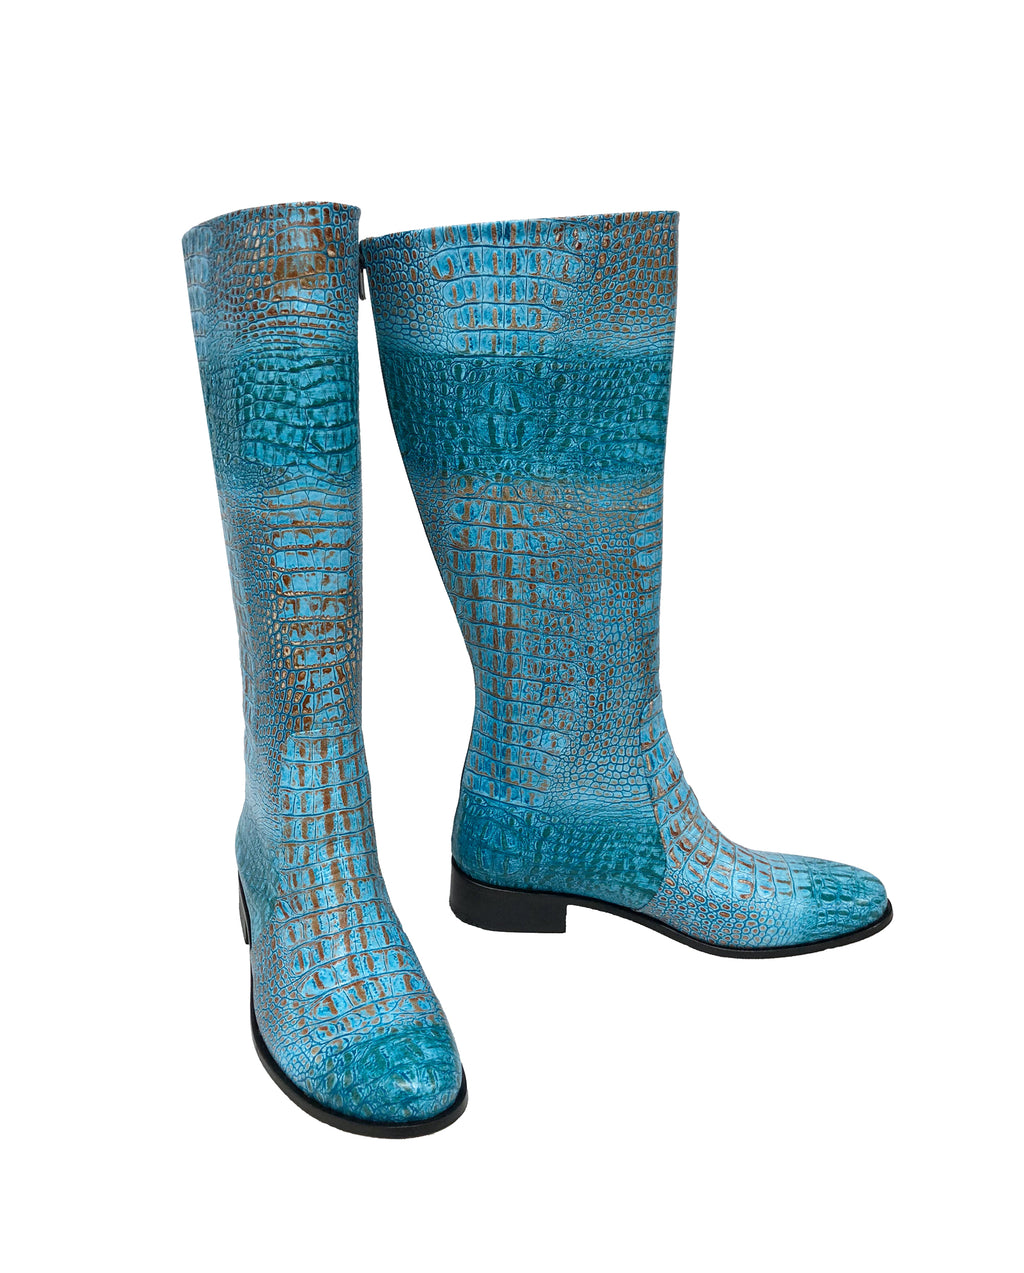 Turquoise Python Leather - Riding